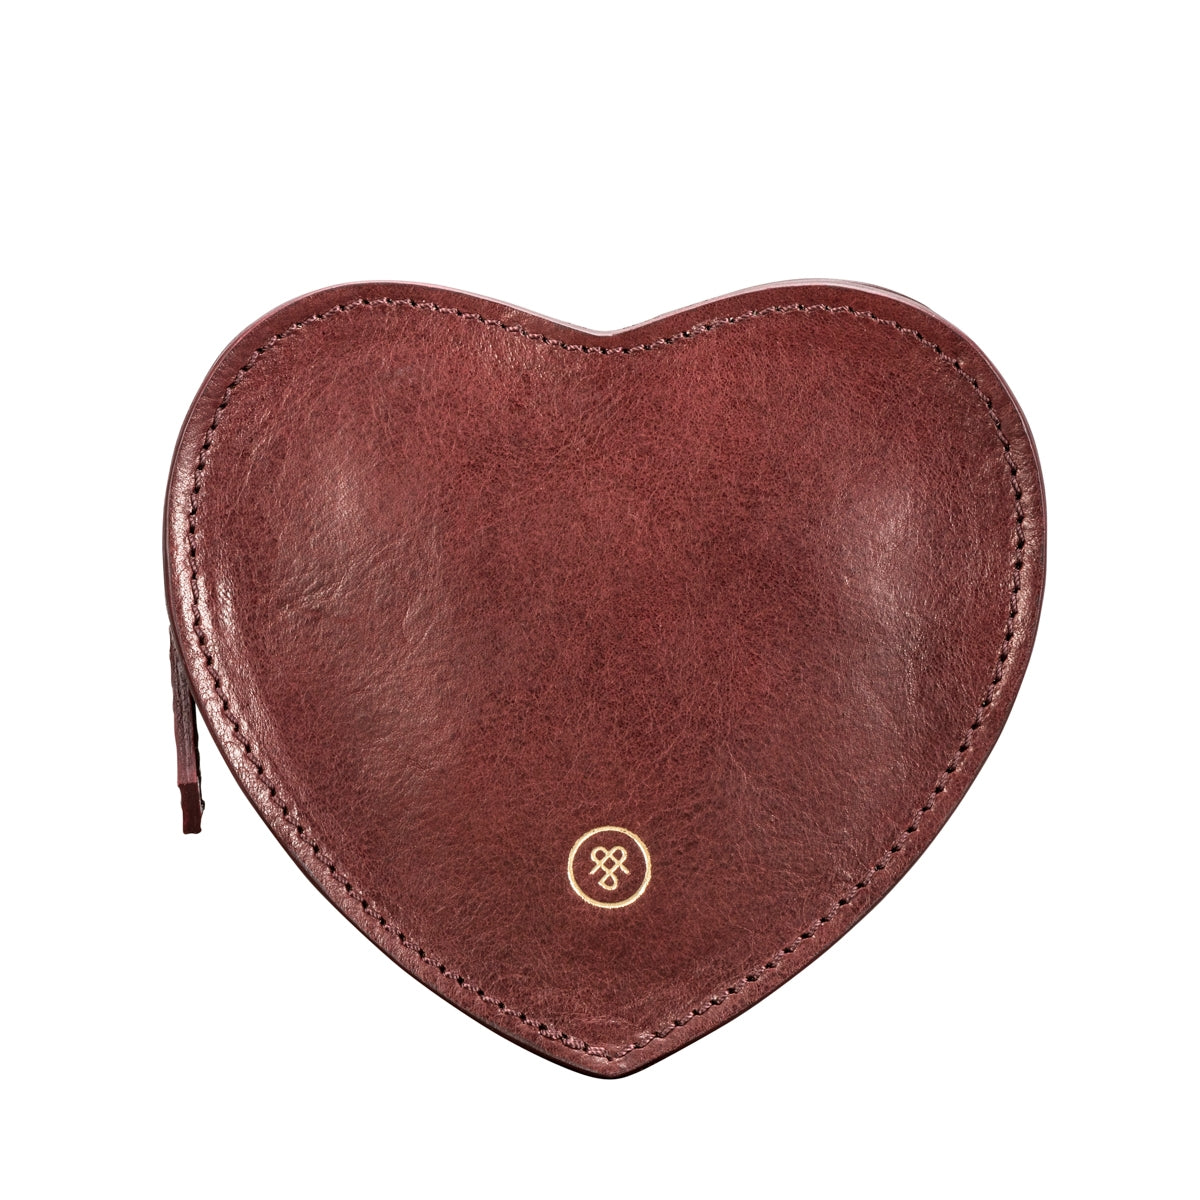 Image 1 of the 'MirabellaL' Wine Leather Heart-shaped Handbag Organiser